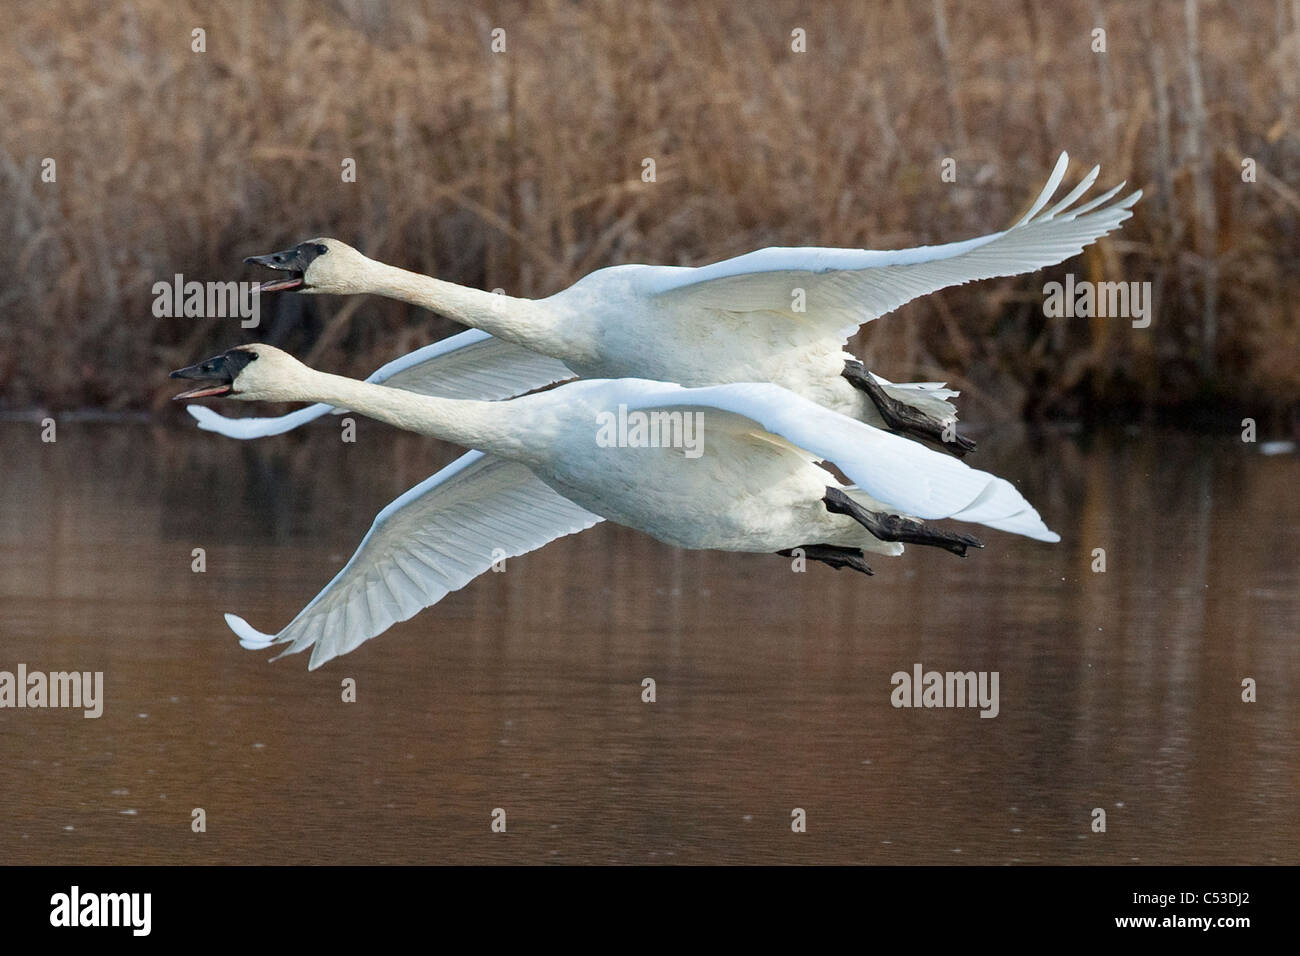 Two adult Trumpeter Swans fly over Potter Marsh, near Anchorage, Southcentral Alaska, Autumn - Stock Image